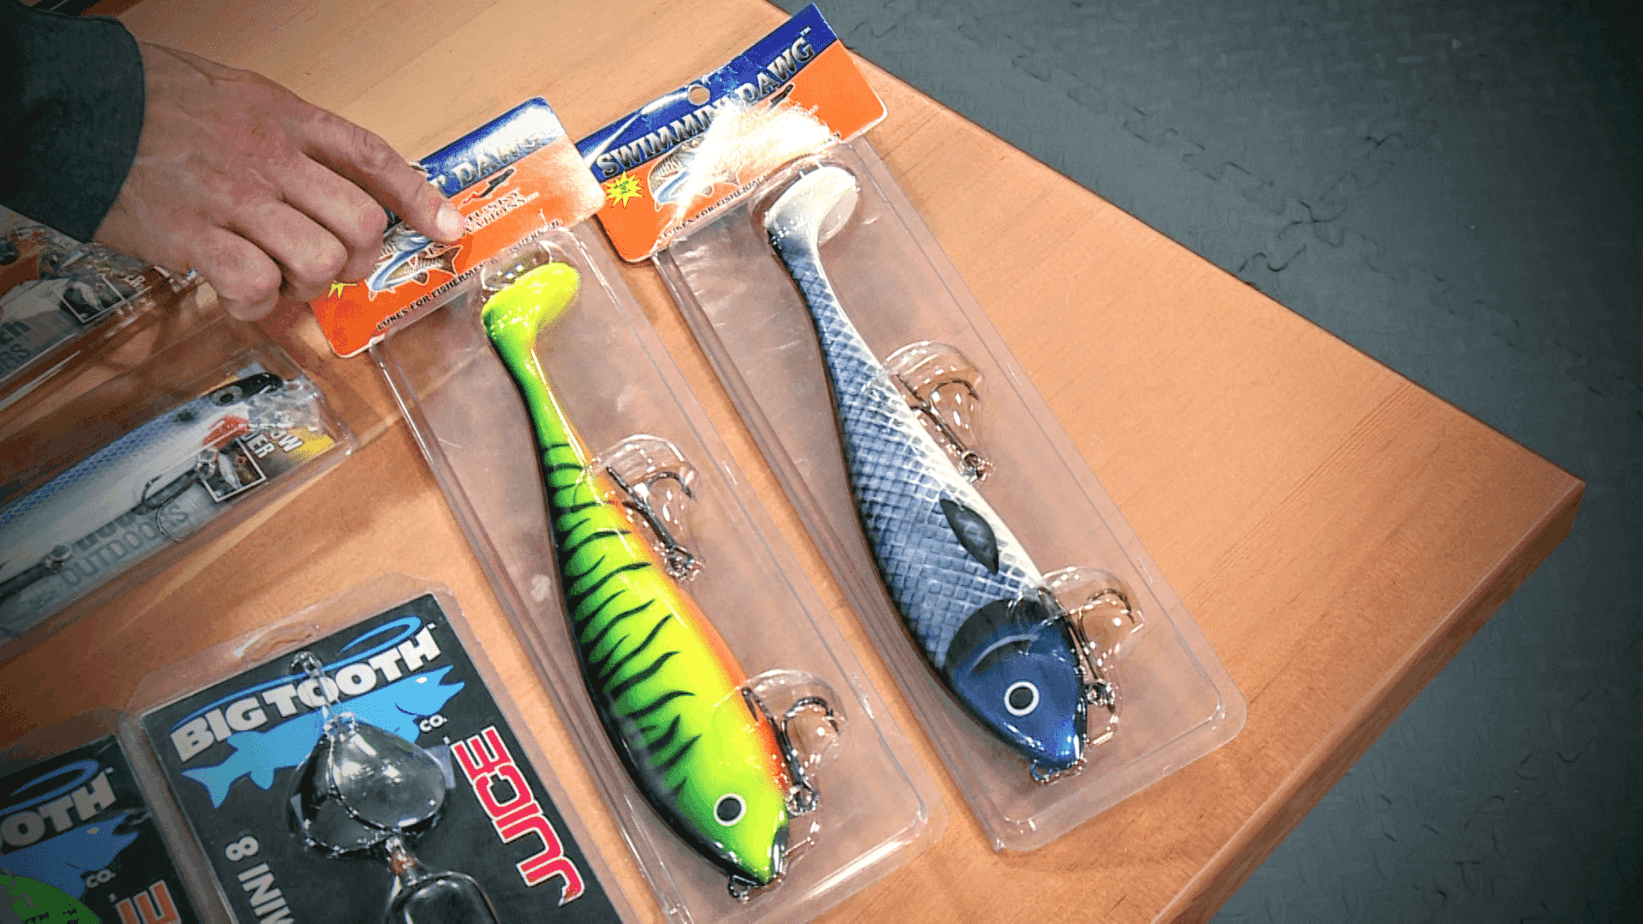 Musky Fishing Lures (Topwater, Blades, Swimbaits, Cranks, etc.)